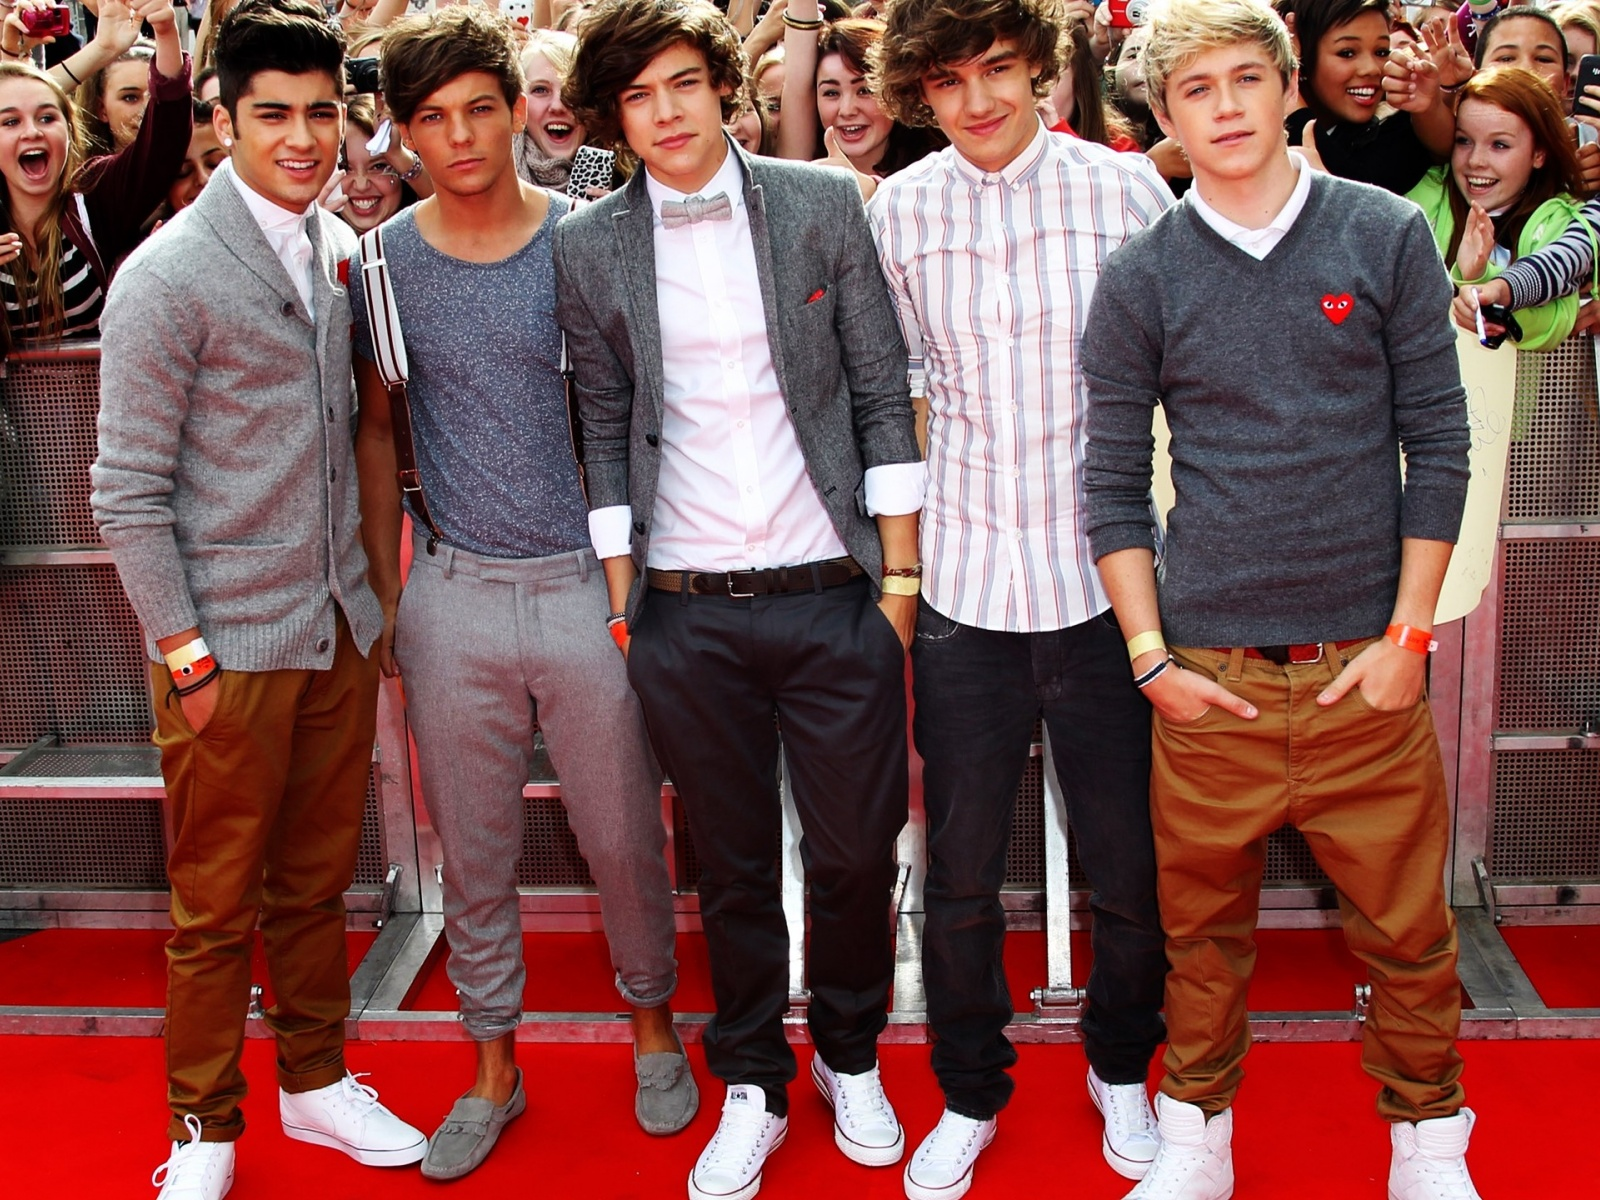 1500x500 One Direction Red Carpet Twitter Header Photo